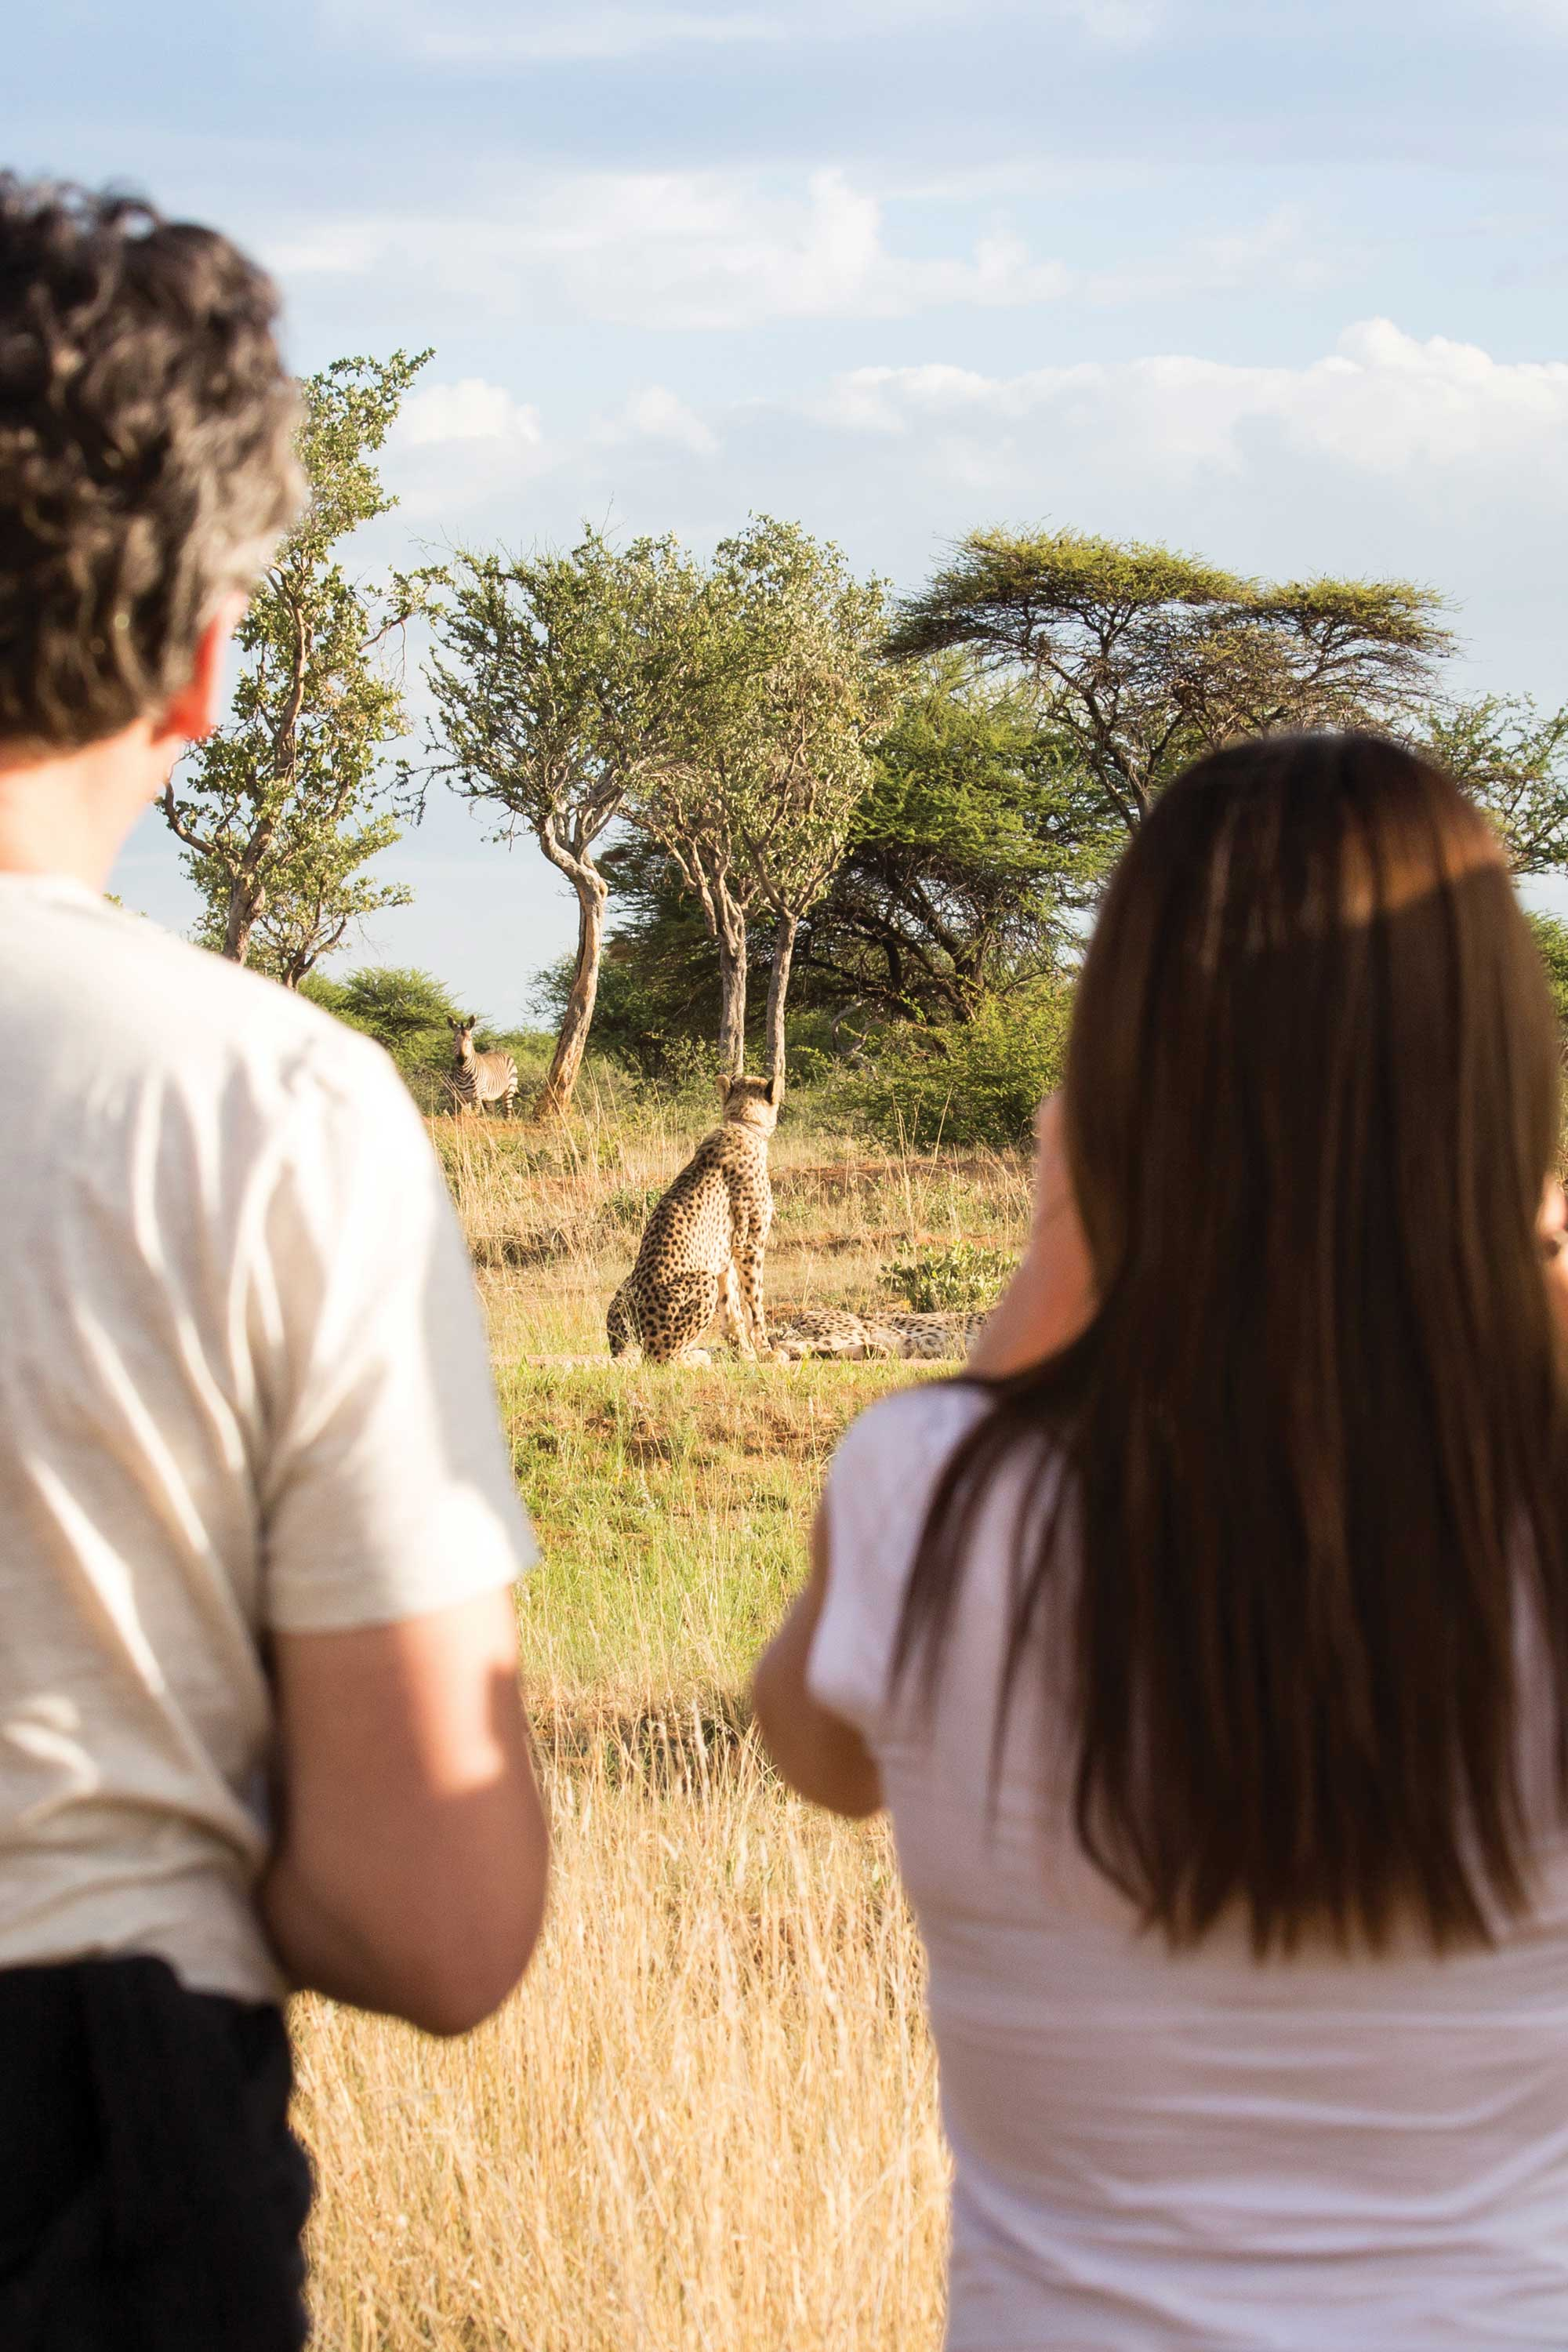 Just-who-is-watching-who...-Cheetah-tracking-on-foot-at-Okonjima